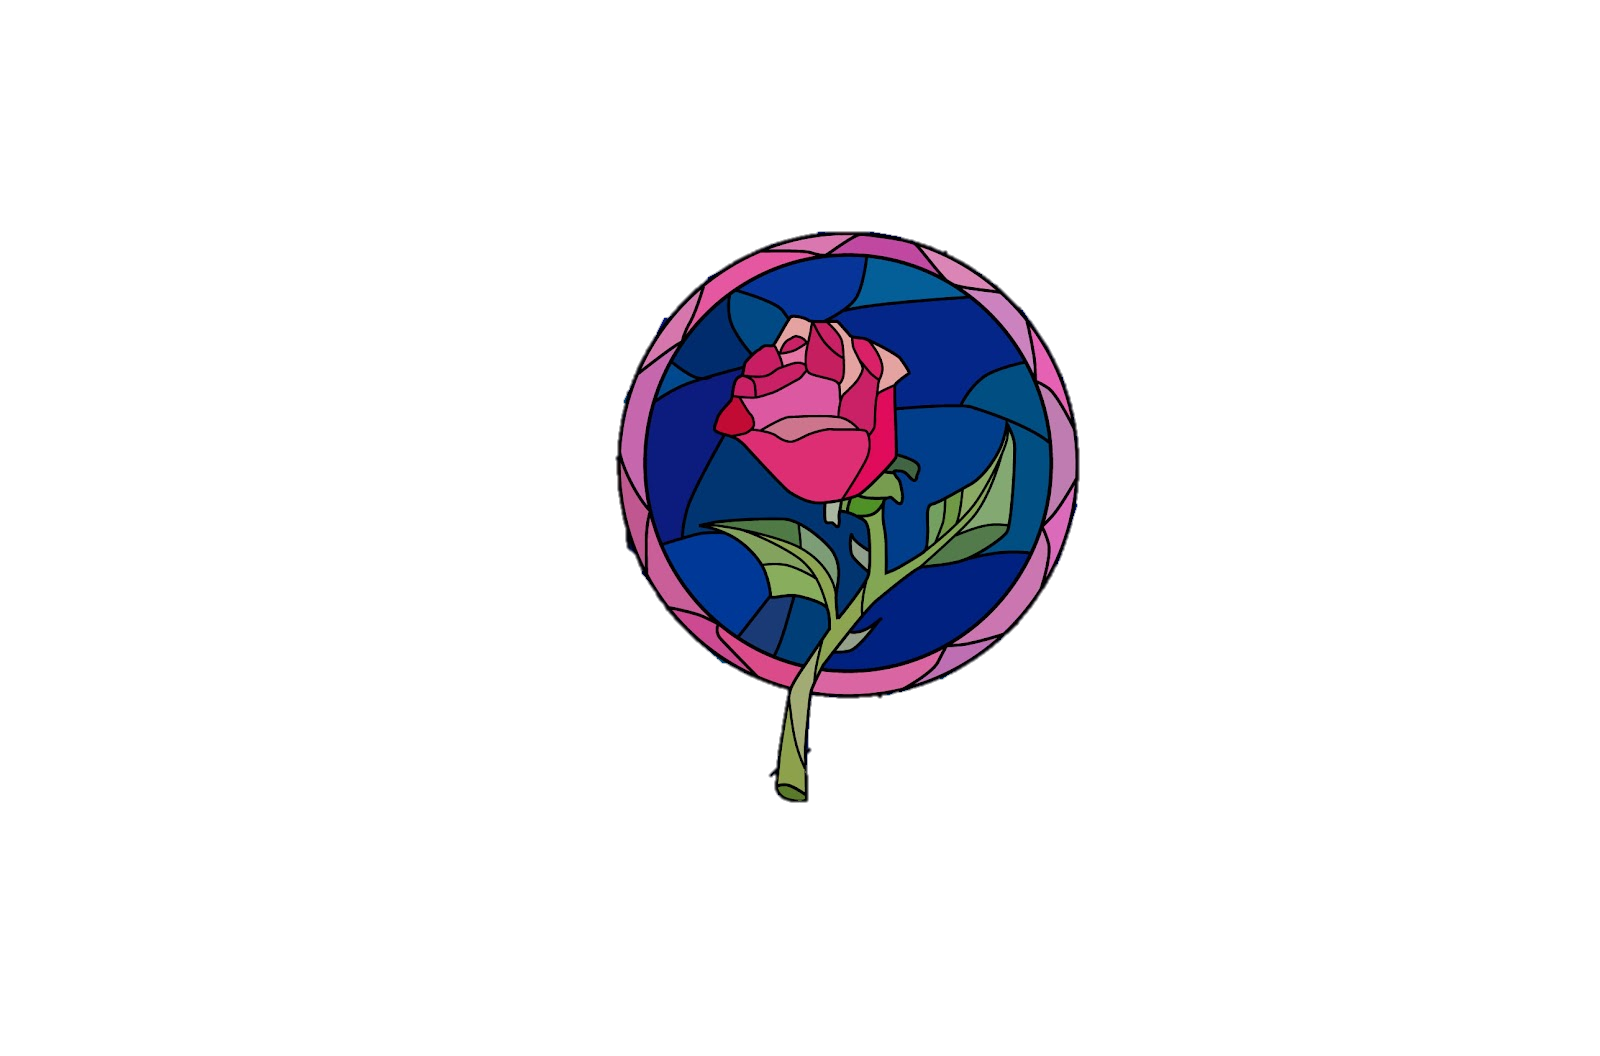 Beauty and the beast rose png. August overanalysis of disney